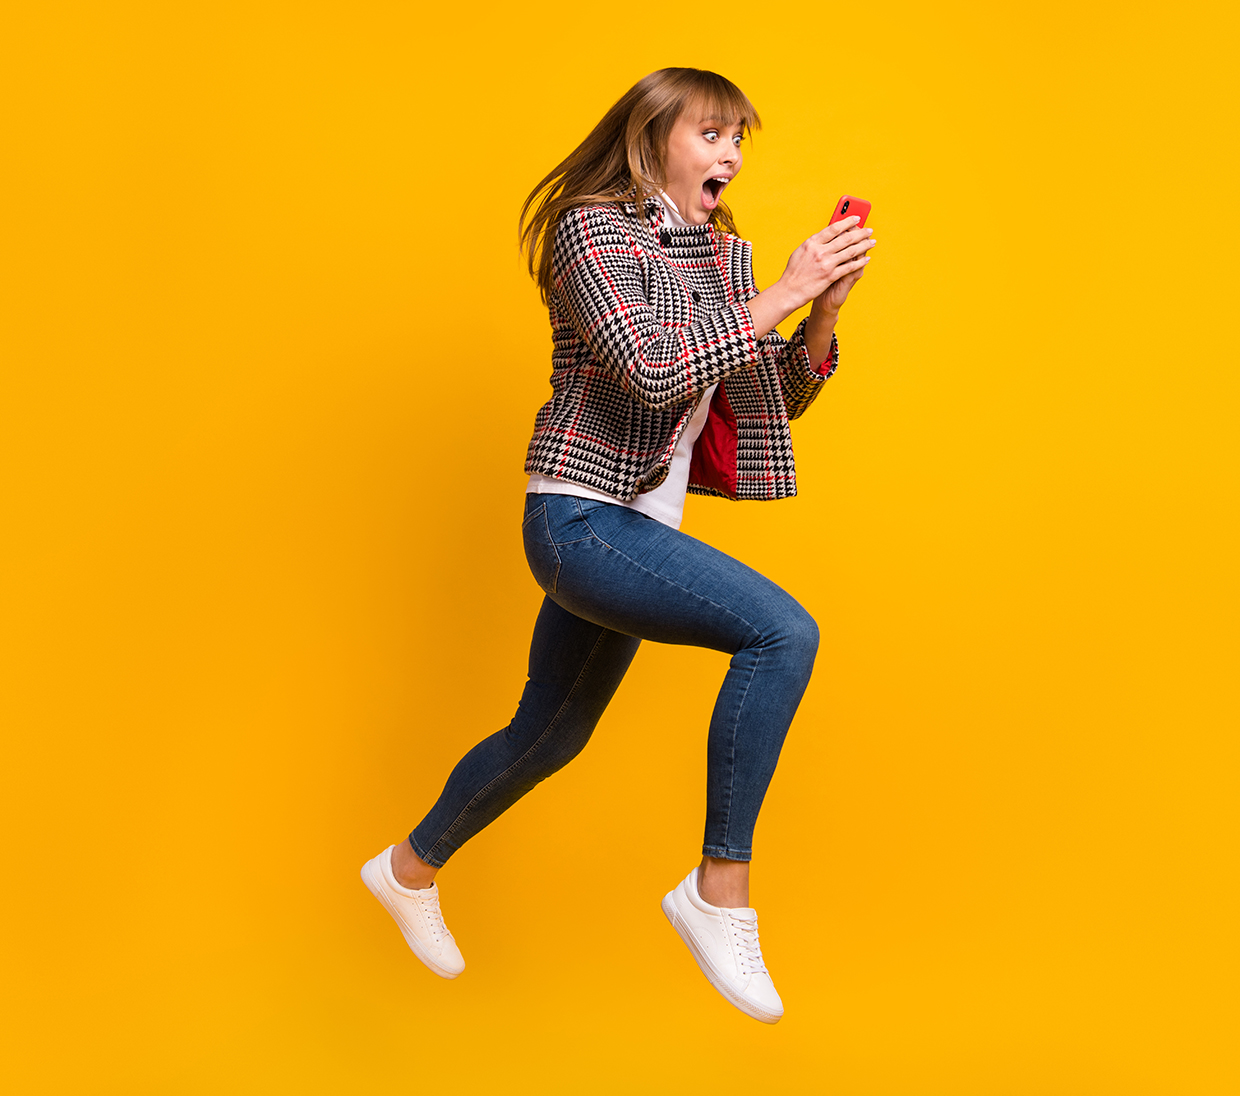 Woman jumping with phone on her hand